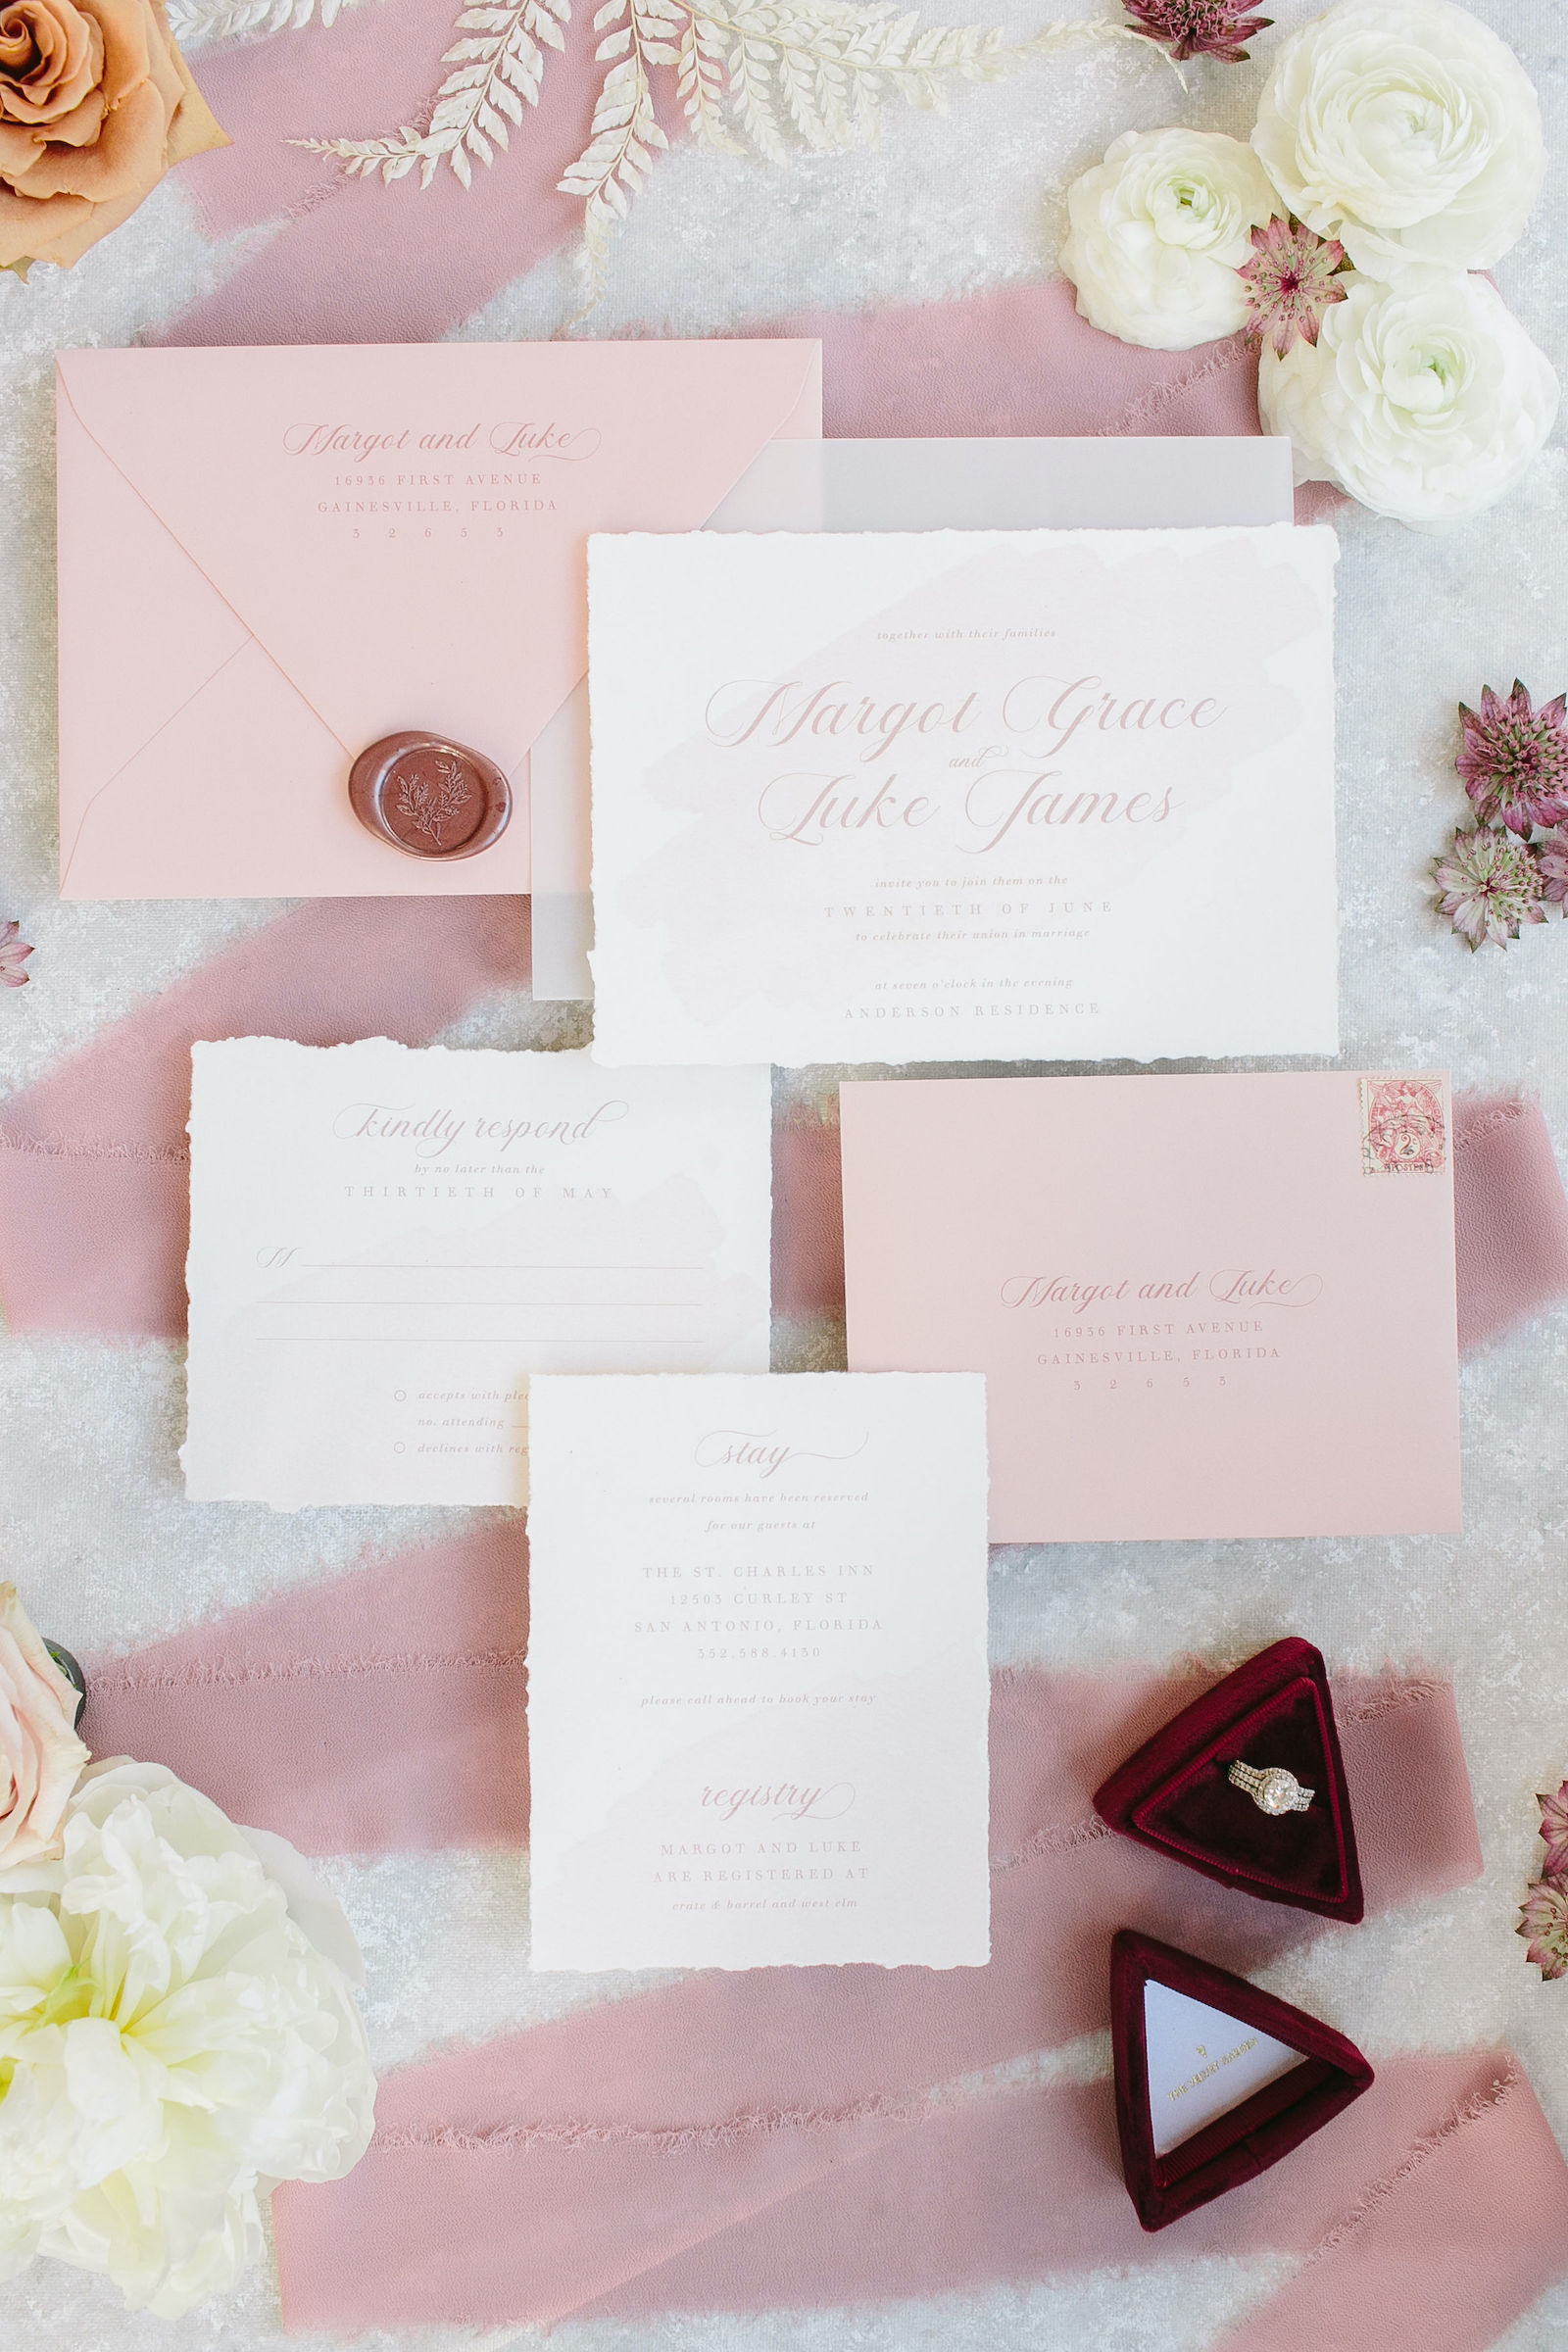 Blush Pink and Mauve Wedding Stationery Suite with Raw Edge Invitation and Wax Seal | Wedding Photography Flay Lay Shot with Fresh Flowers and Burgundy Velvet Ring Box